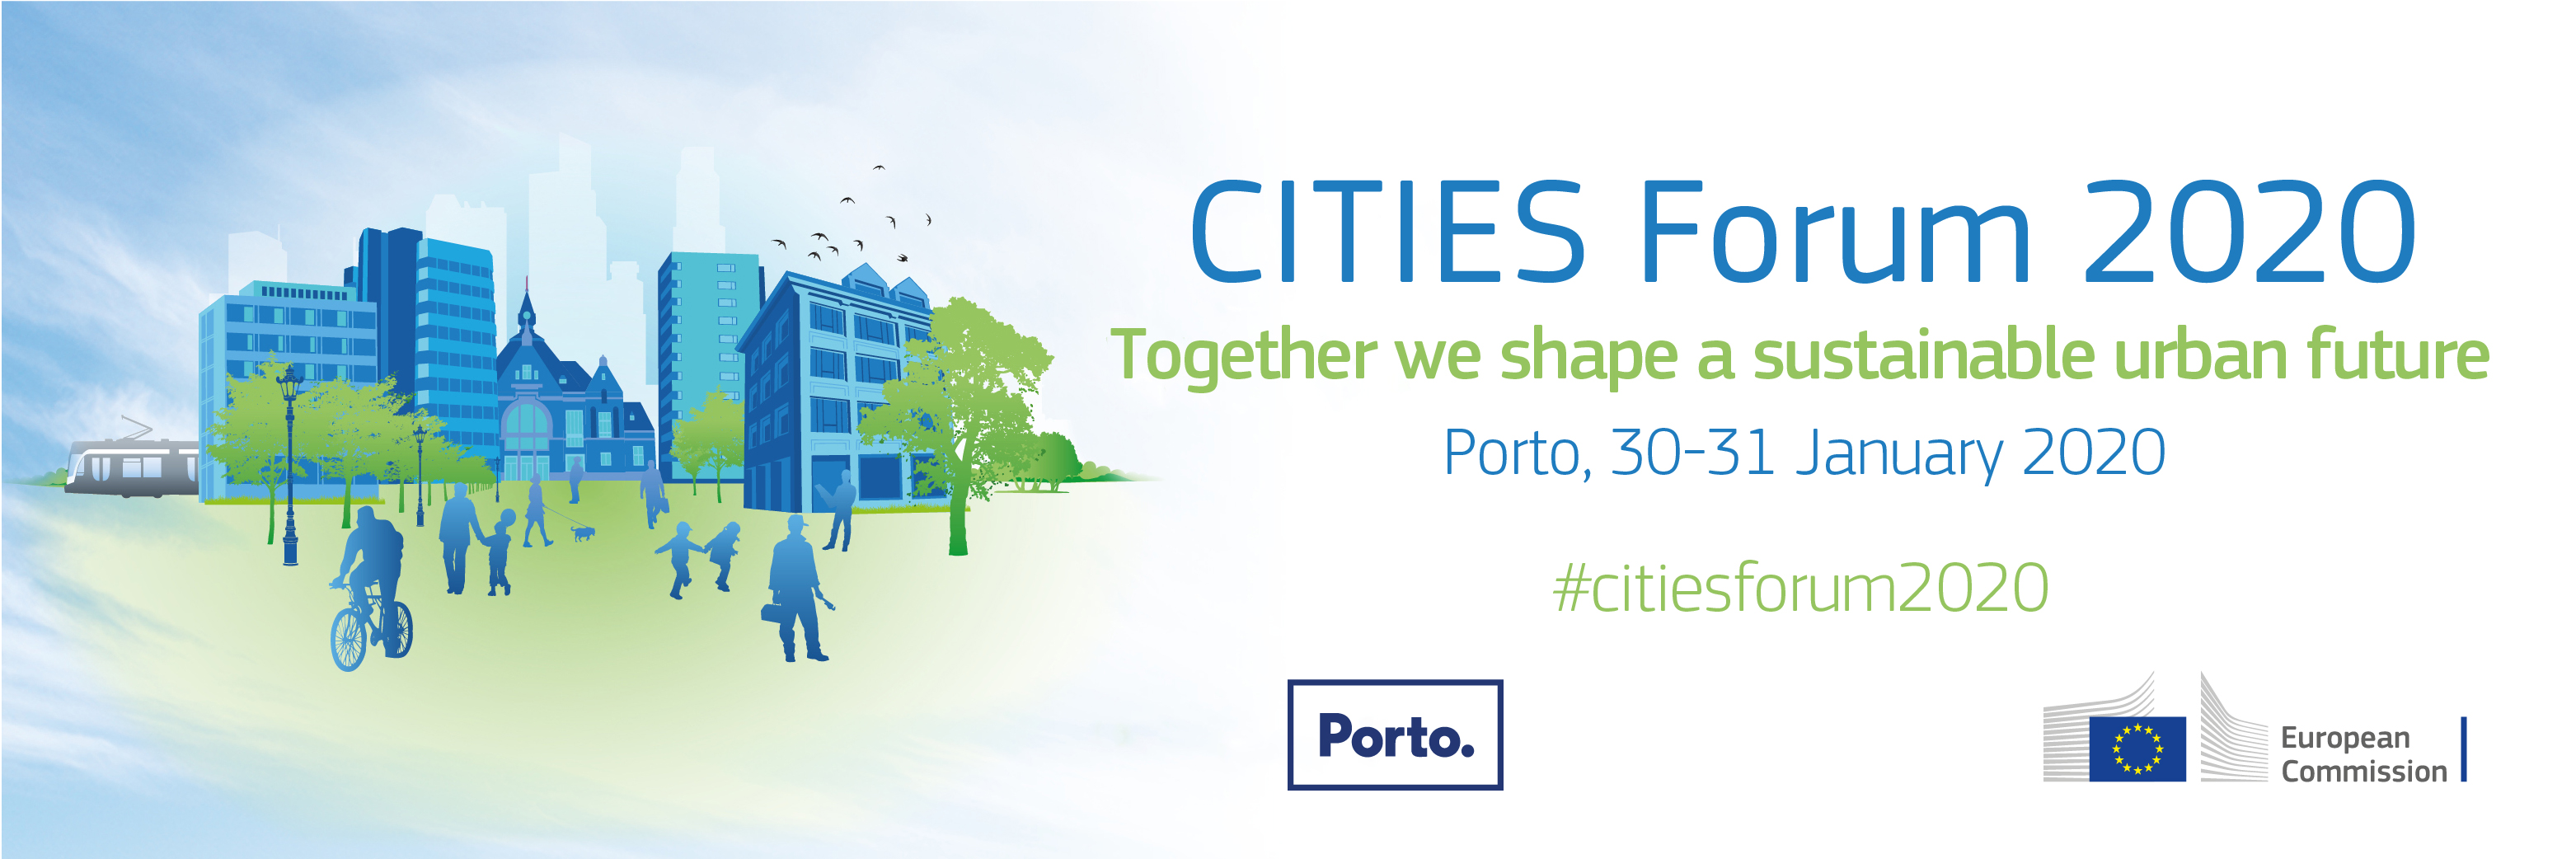 CITIES Forum 2020